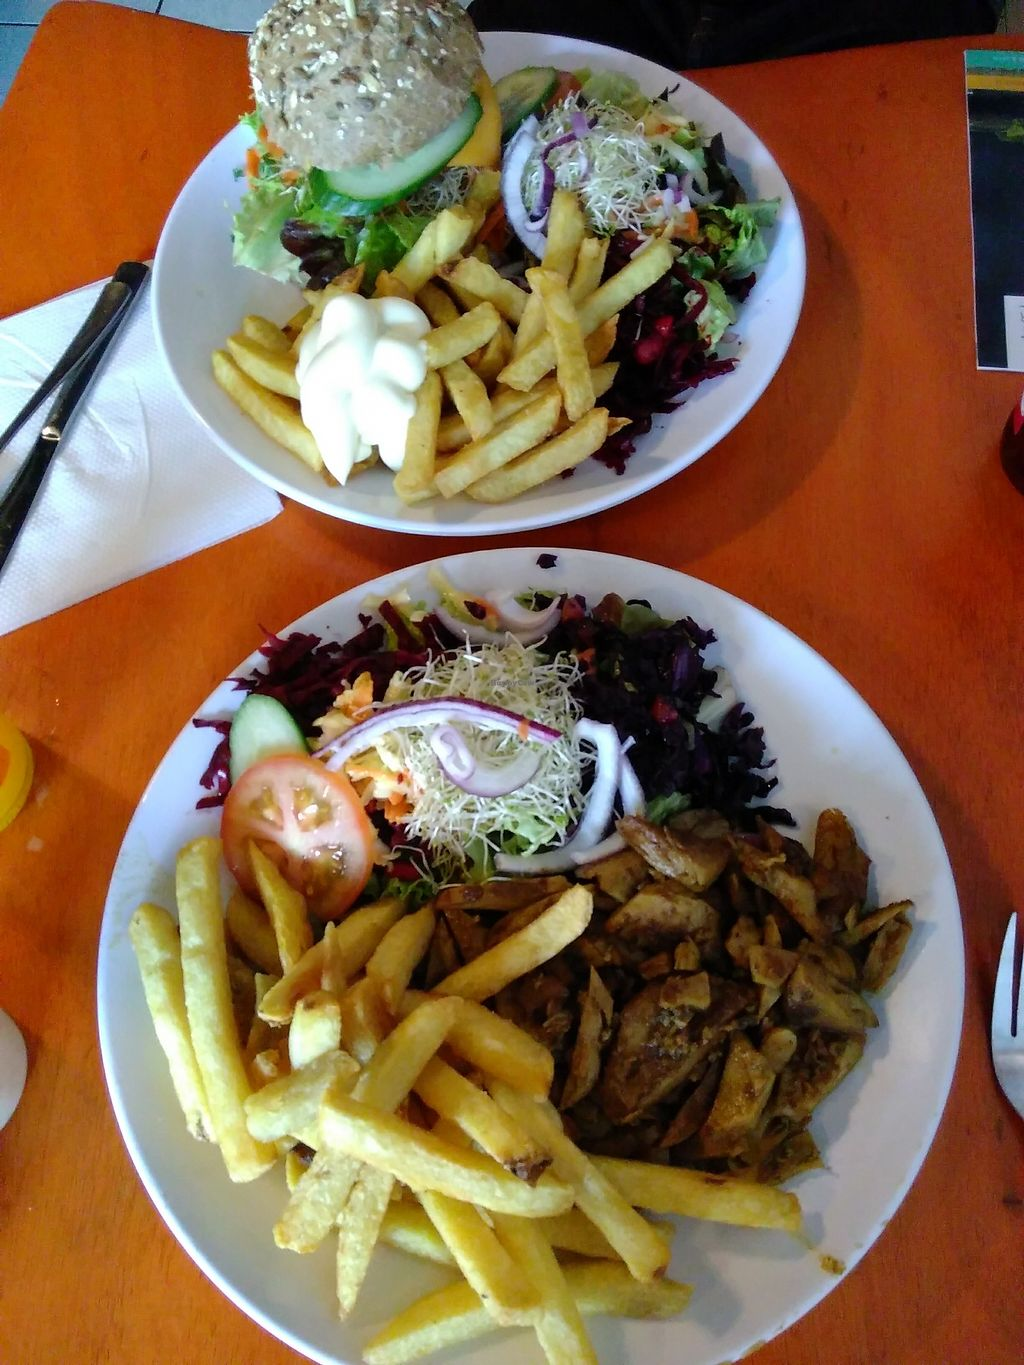 """Photo of De Vegetarische Snackbar  by <a href=""""/members/profile/Springofcompassion"""">Springofcompassion</a> <br/>Full plates - the 'before' <br/> September 9, 2017  - <a href='/contact/abuse/image/37902/302338'>Report</a>"""